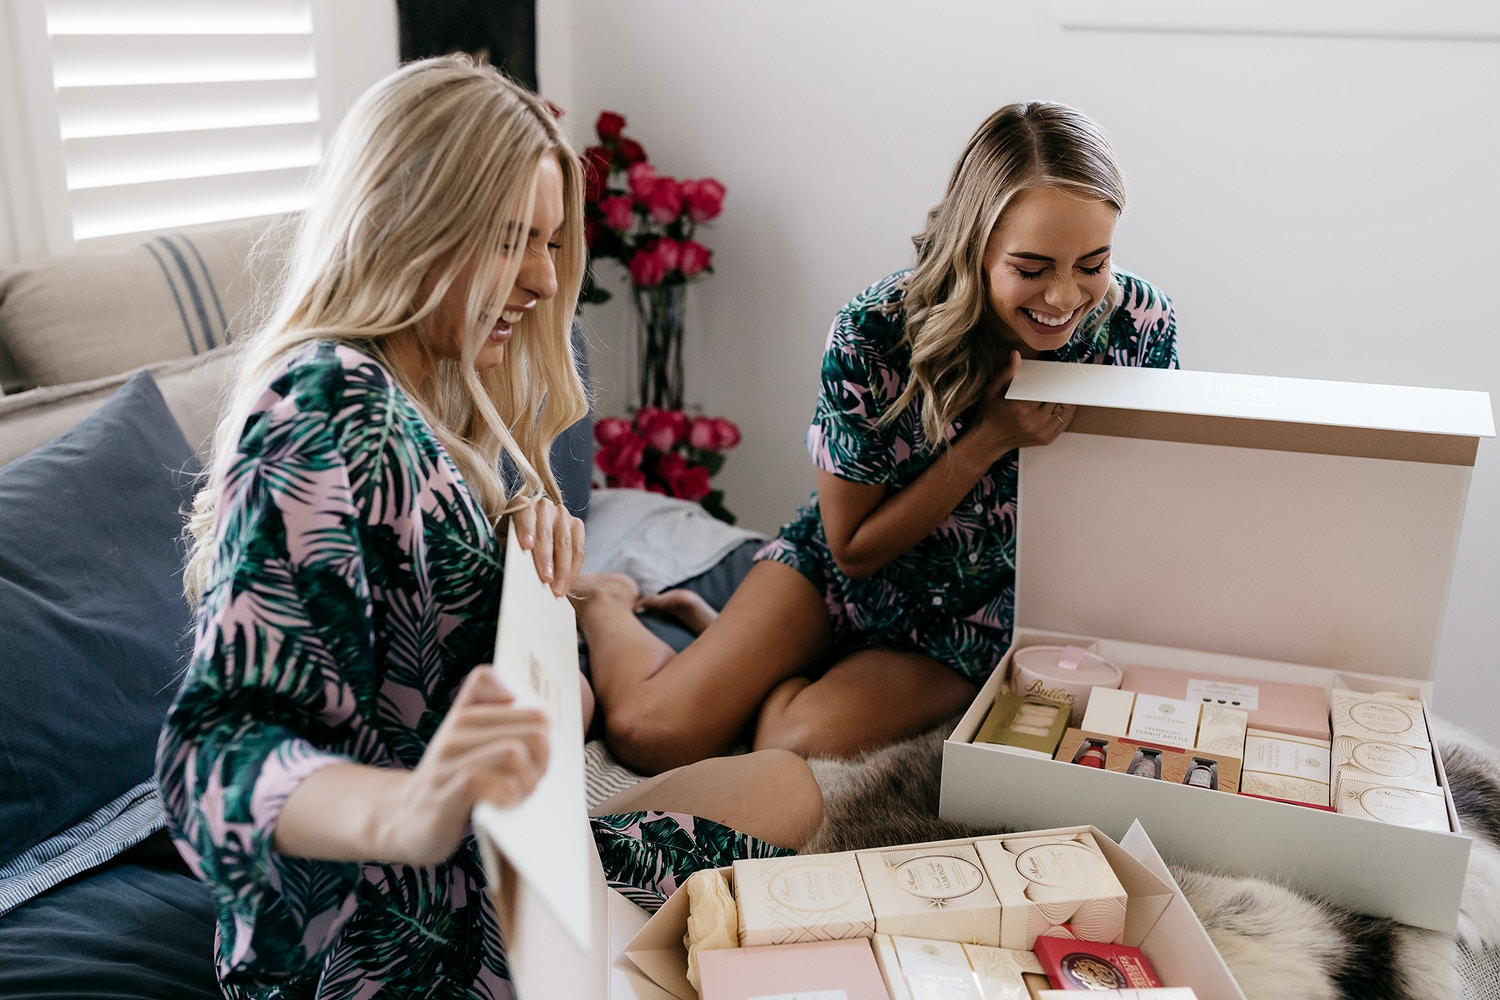 VALENTINE'S DAY GIFT IDEAS FOR YOUR BFF